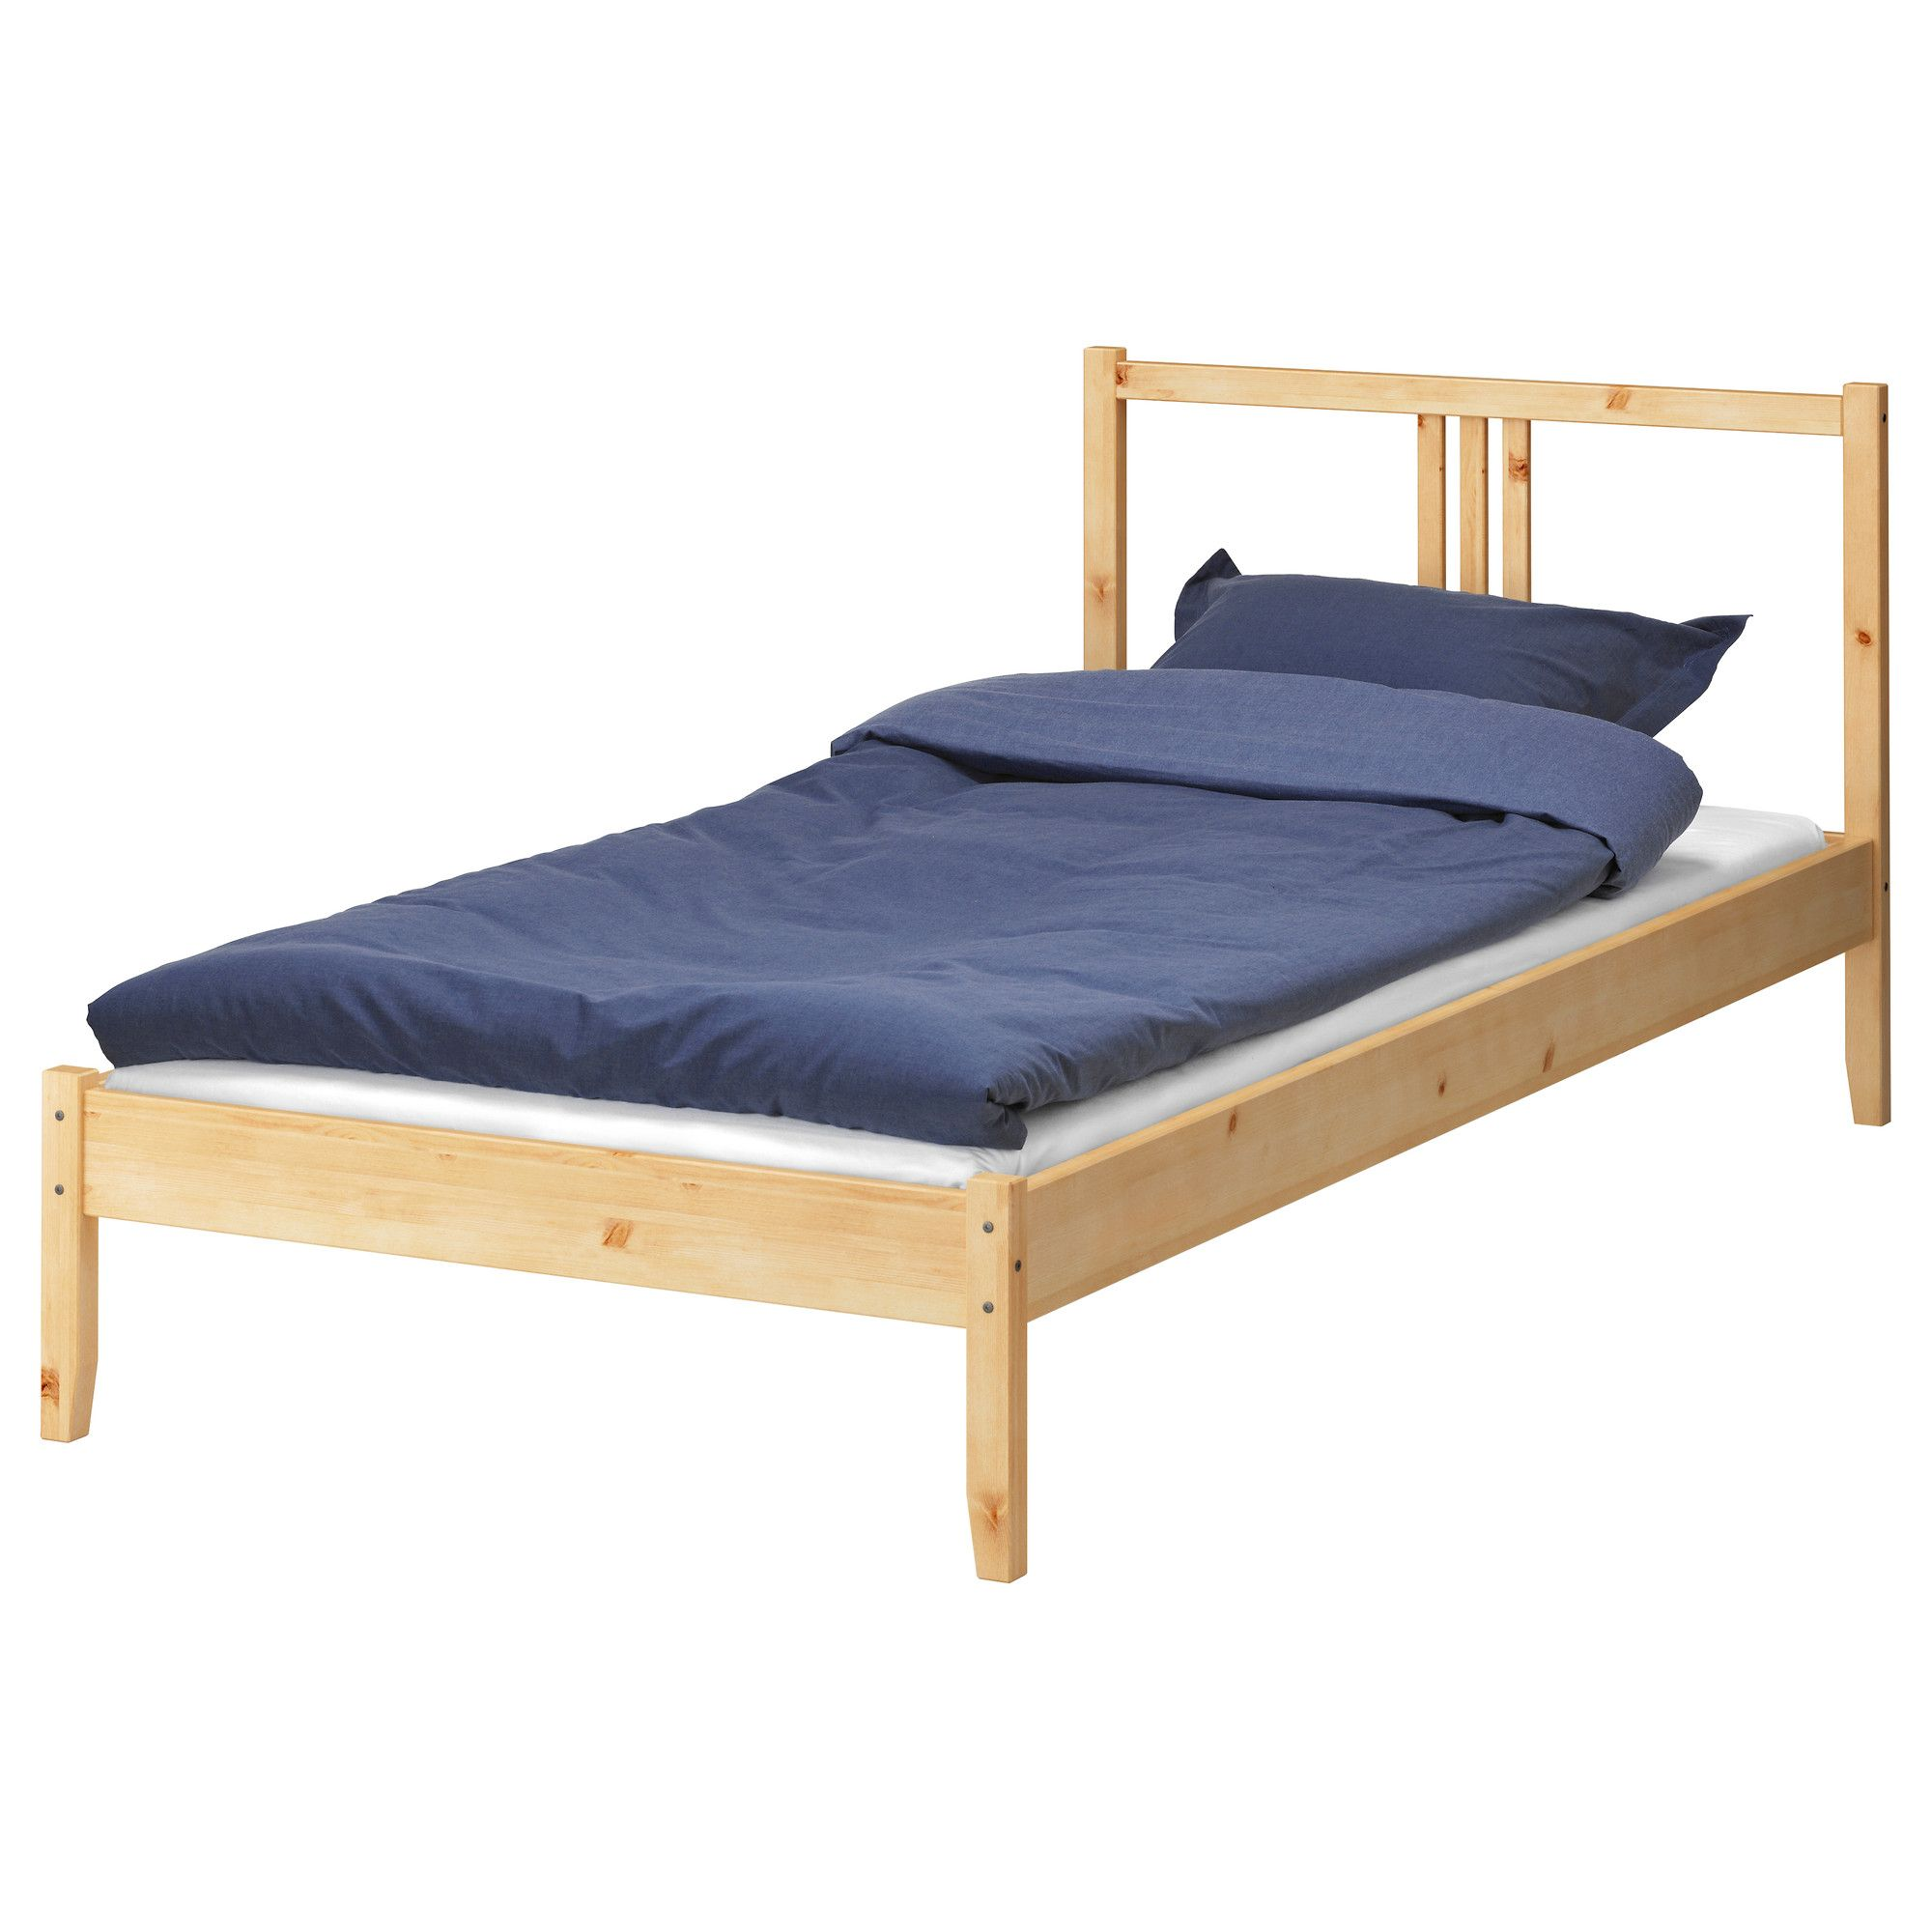 Meubles Et Articles D Ameublement Inspirez Vous Ikea Twin Bed Ikea Bed Frames Single Bed Frame Ikea